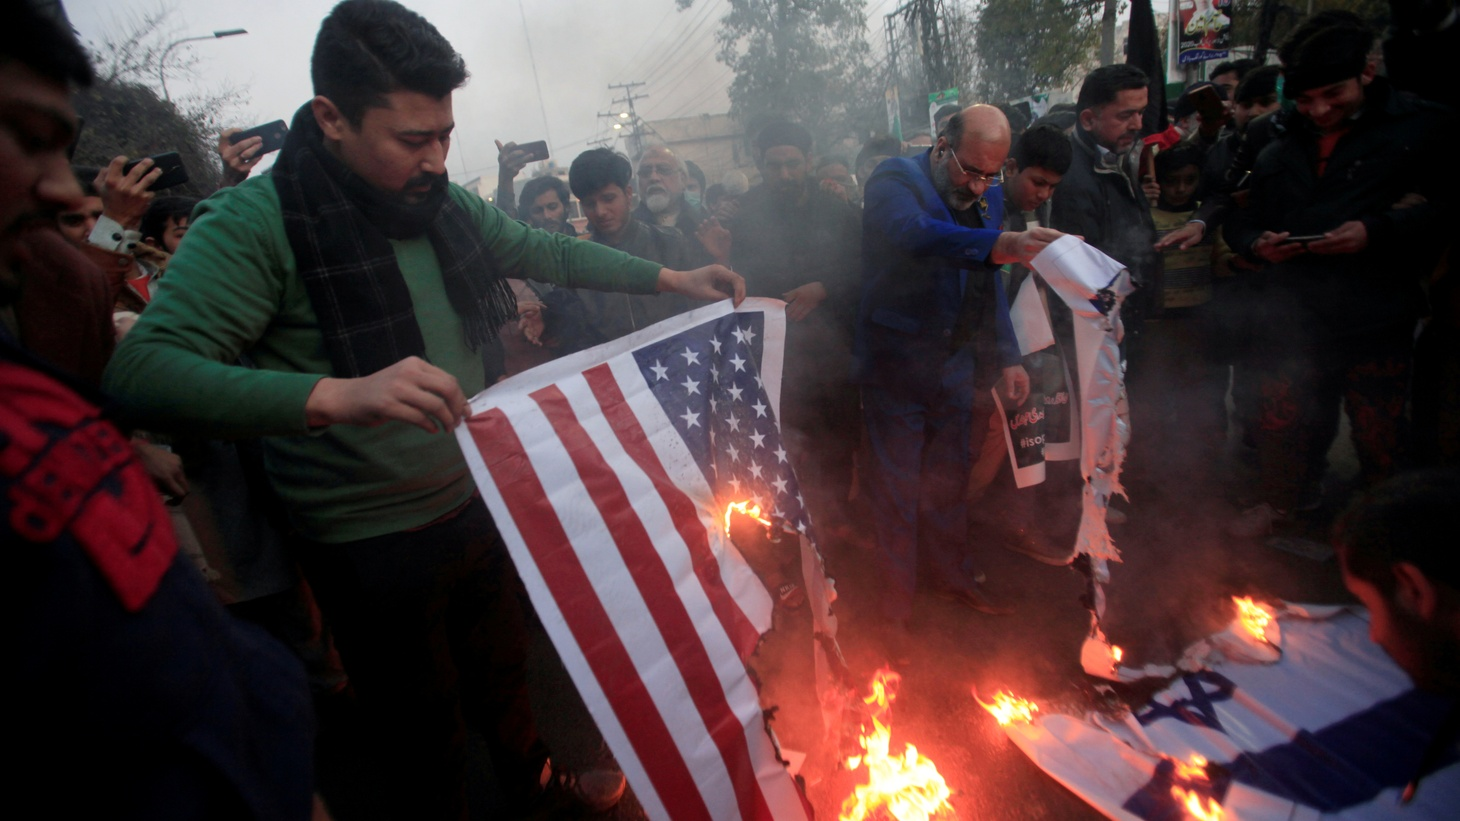 Pakistani Shi'ite Muslim supporters of Majlis-e-Wahdat-e-Muslimeen (MWM) burn U.S and Israel's flags to condemn the death of Iranian Major-General Qassem Soleimani, who was killed in an airstrike near Baghdad, during a protest in Lahore, Pakistan January 3, 2020.